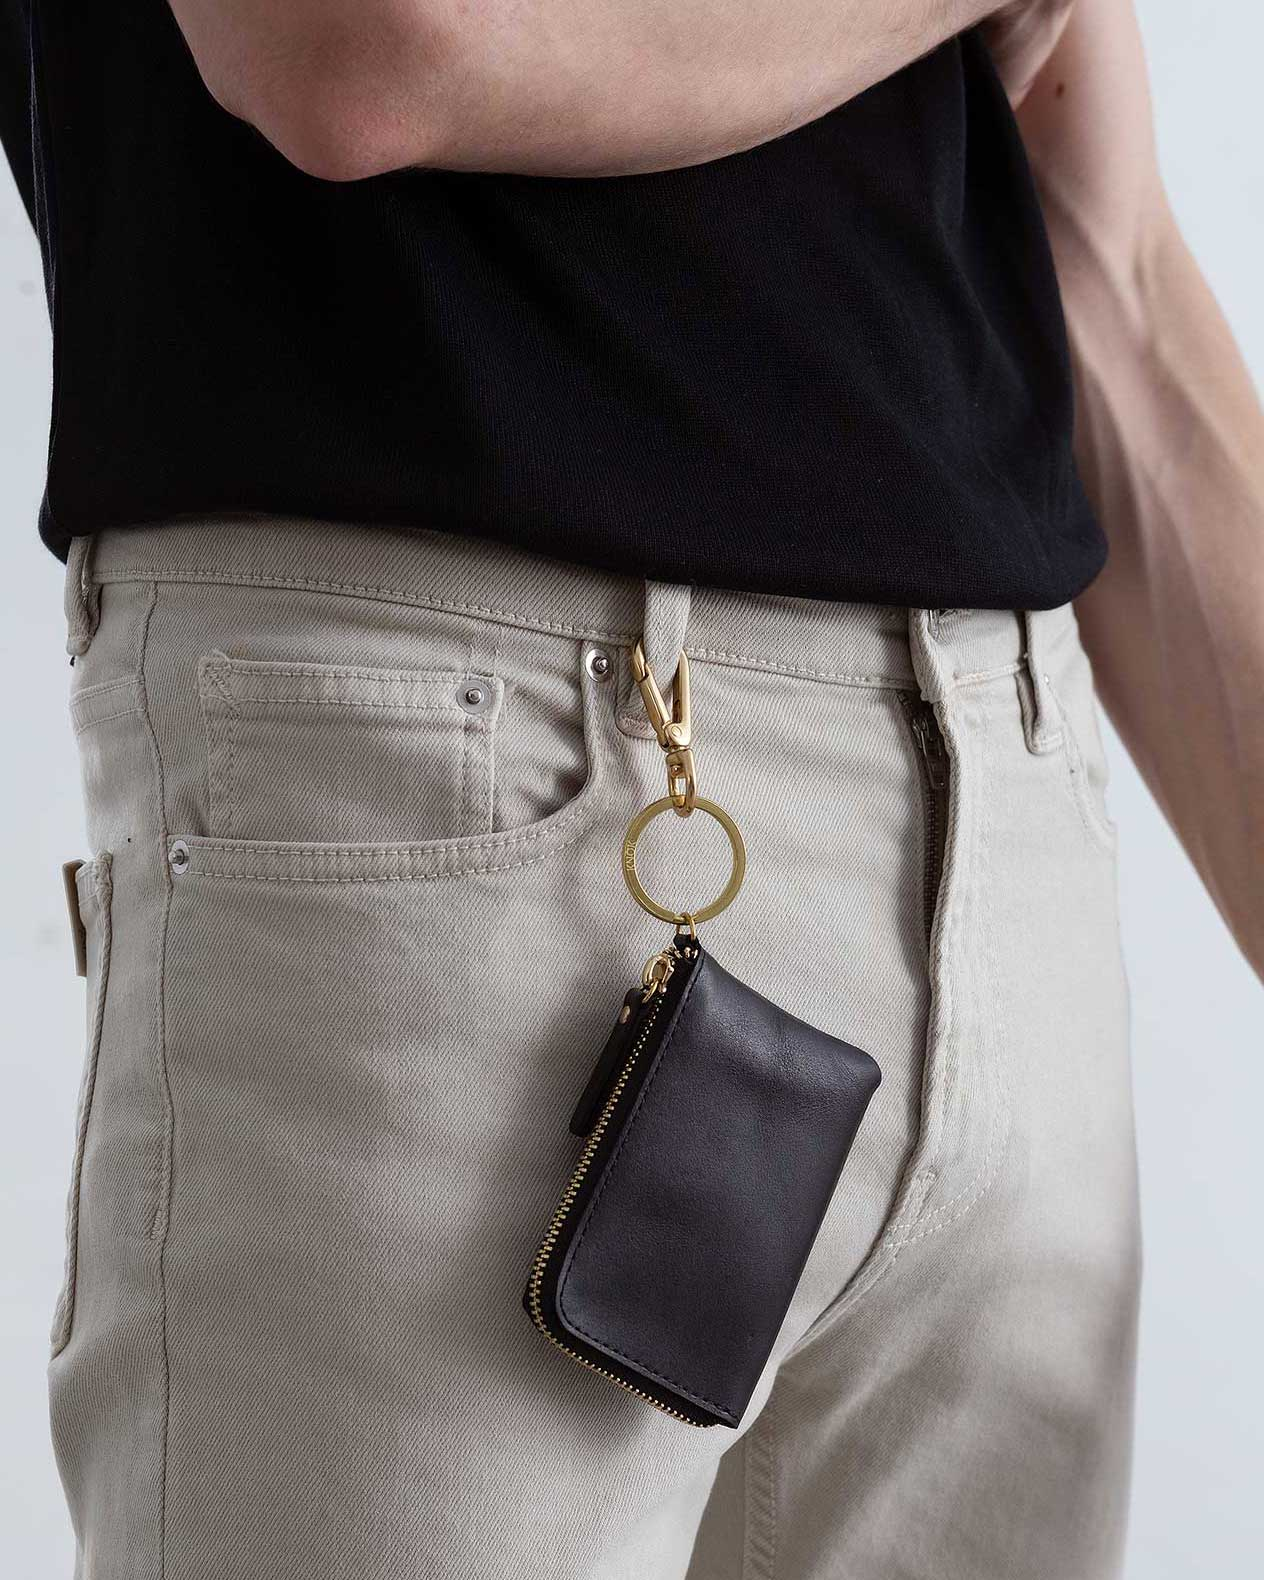 Model with KNOK XS Wallet with Key Hook attached to belt loop on jeans